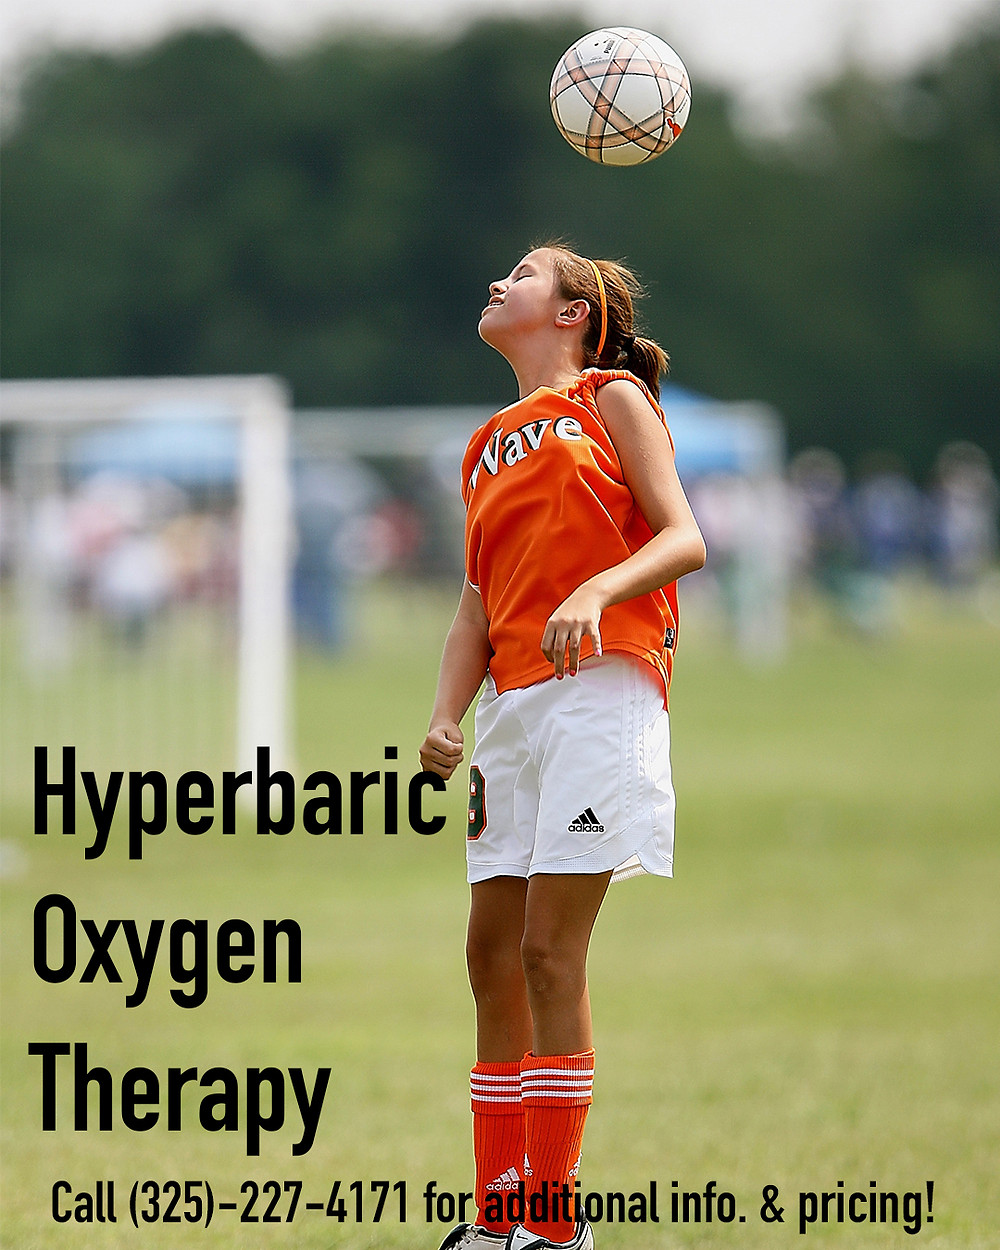 Young Athlete Promoting The Benefits Of Hyperbaric Oxygen Therapy in Young Athletes.